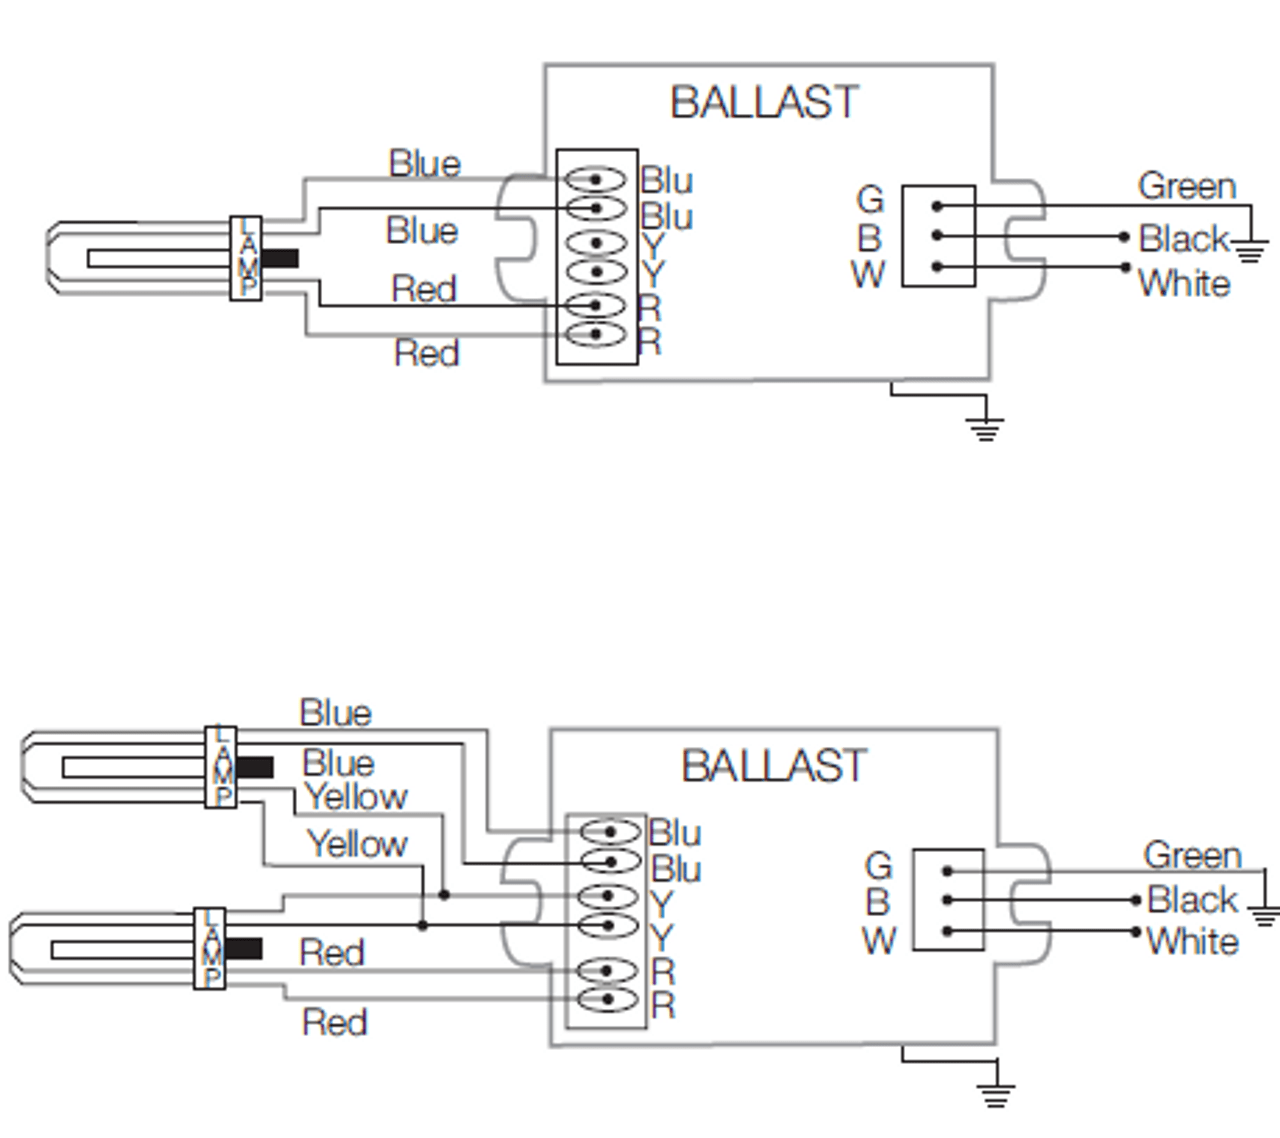 sylvania ballast wiring diagram guide about wiring diagram osram sylvania ballast wiring diagram [ 1280 x 1138 Pixel ]